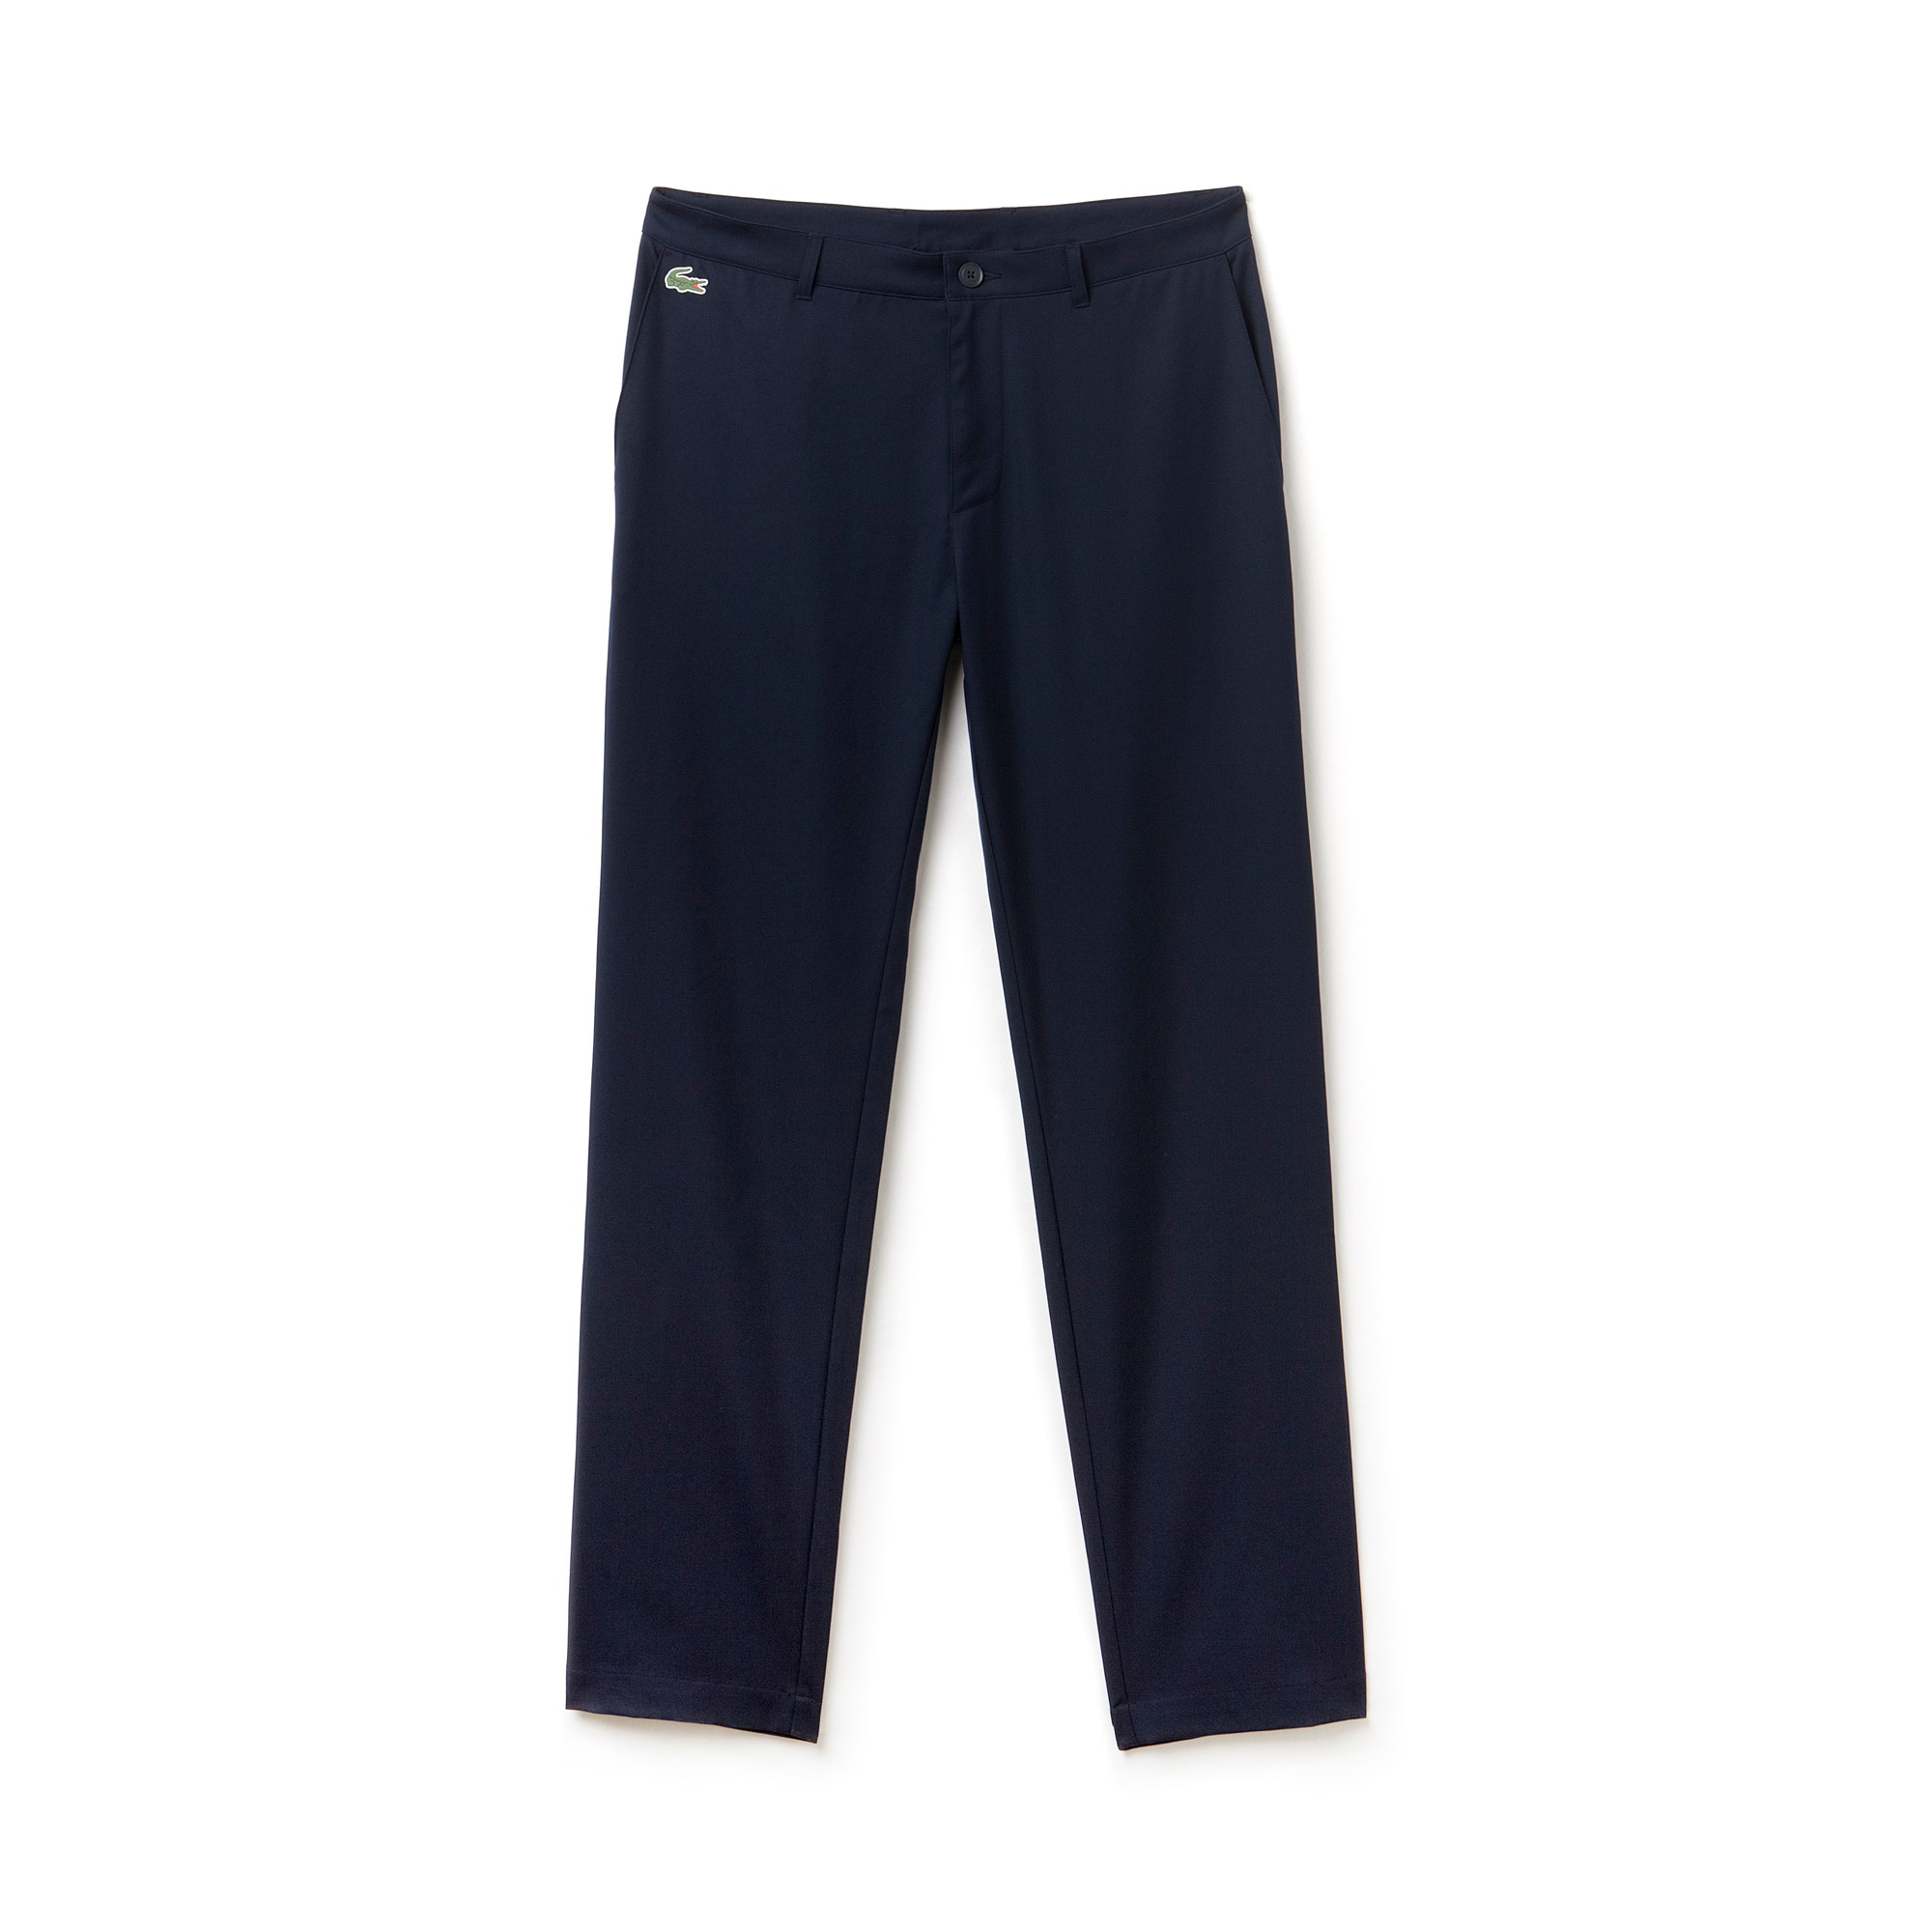 라코스테 Lacoste Mens SPORT Technical Golf Pants,navy blue